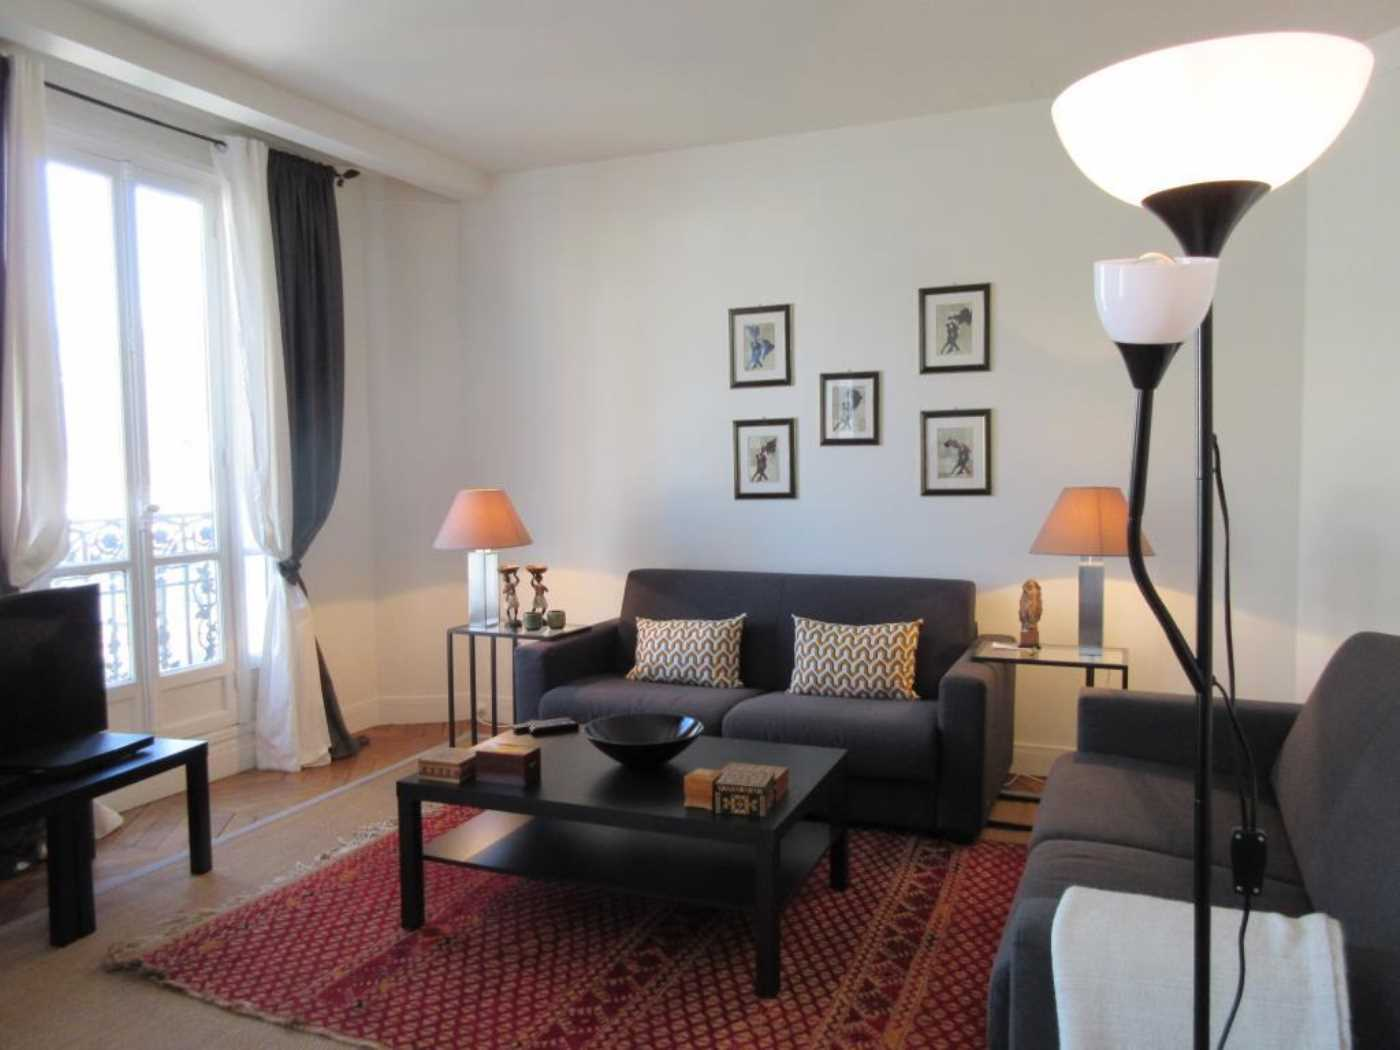 Location Appartement Meublé PARIS Cattalan Johnson Immobilier - Location appartement meuble paris 15